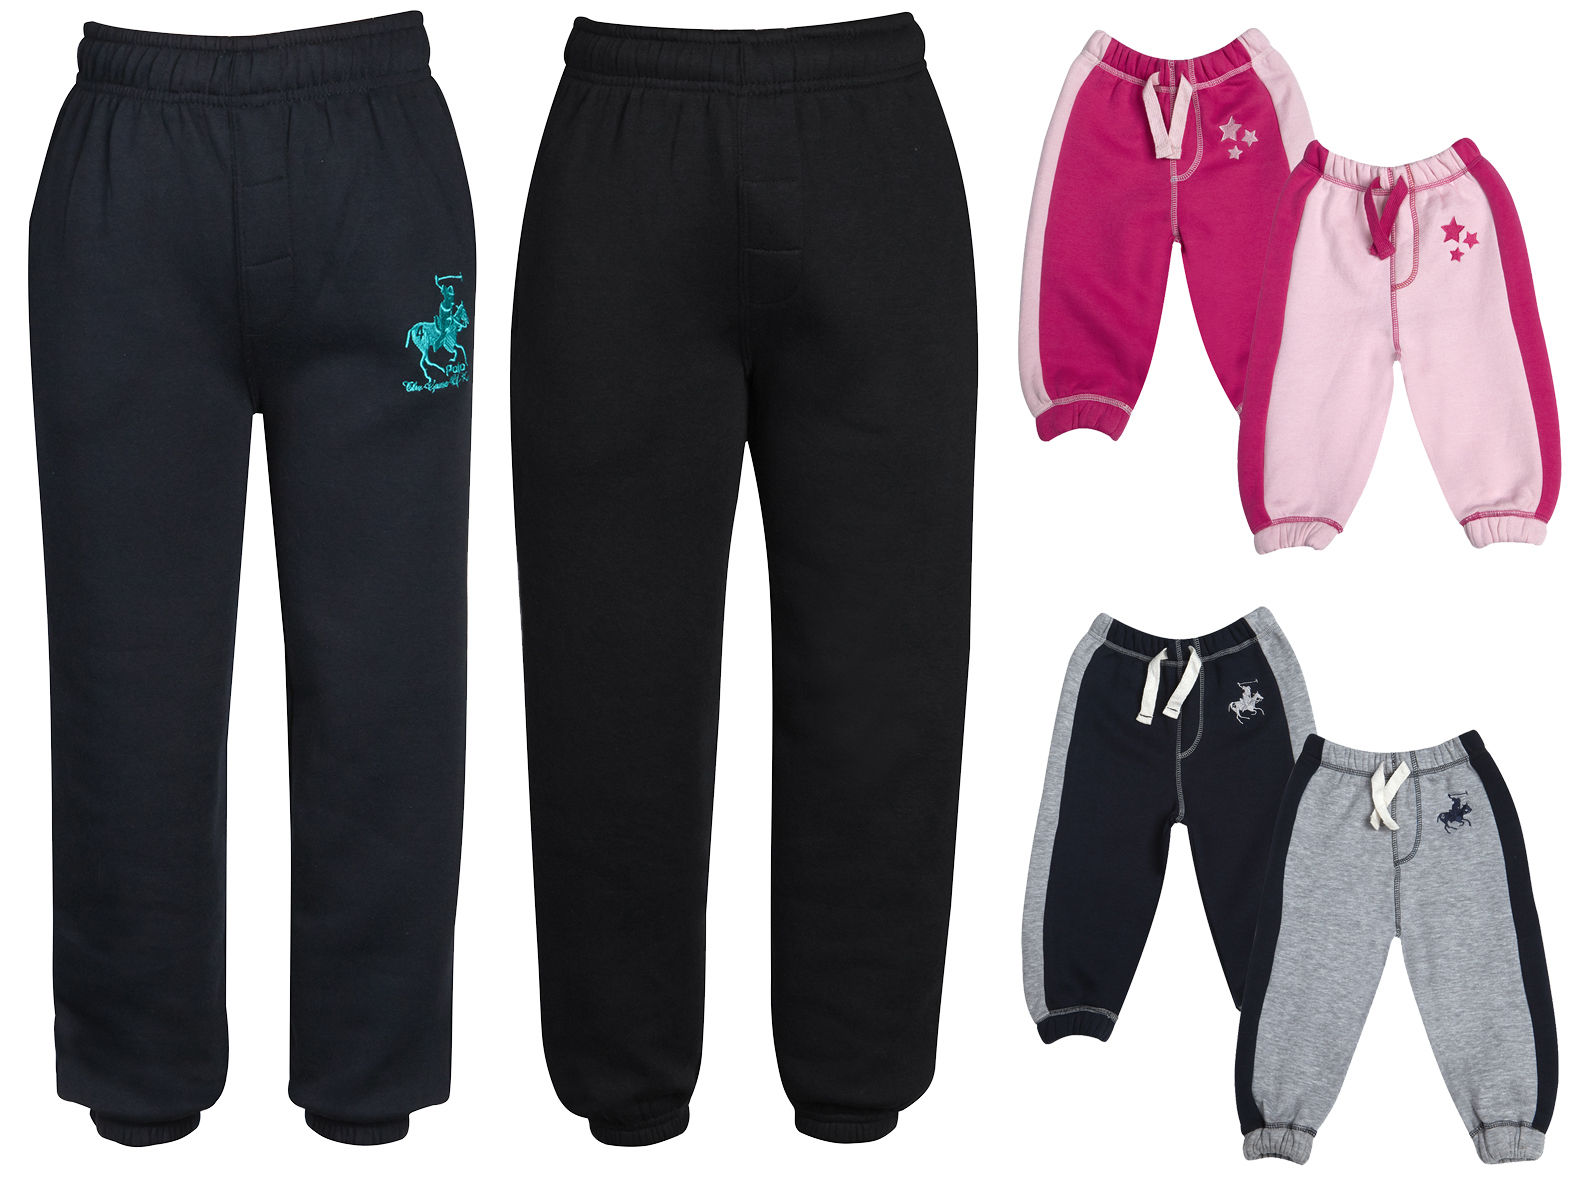 Kids Boys Girls Joggers Jogging Pants Trackie Bottom Fleece Casual Trouser See more like this KIDS BOYS GIRLS SCHOOL TROUSER FLEECE JOGGING PANTS TRACKSUIT BOTTOM YEARS Brand New.